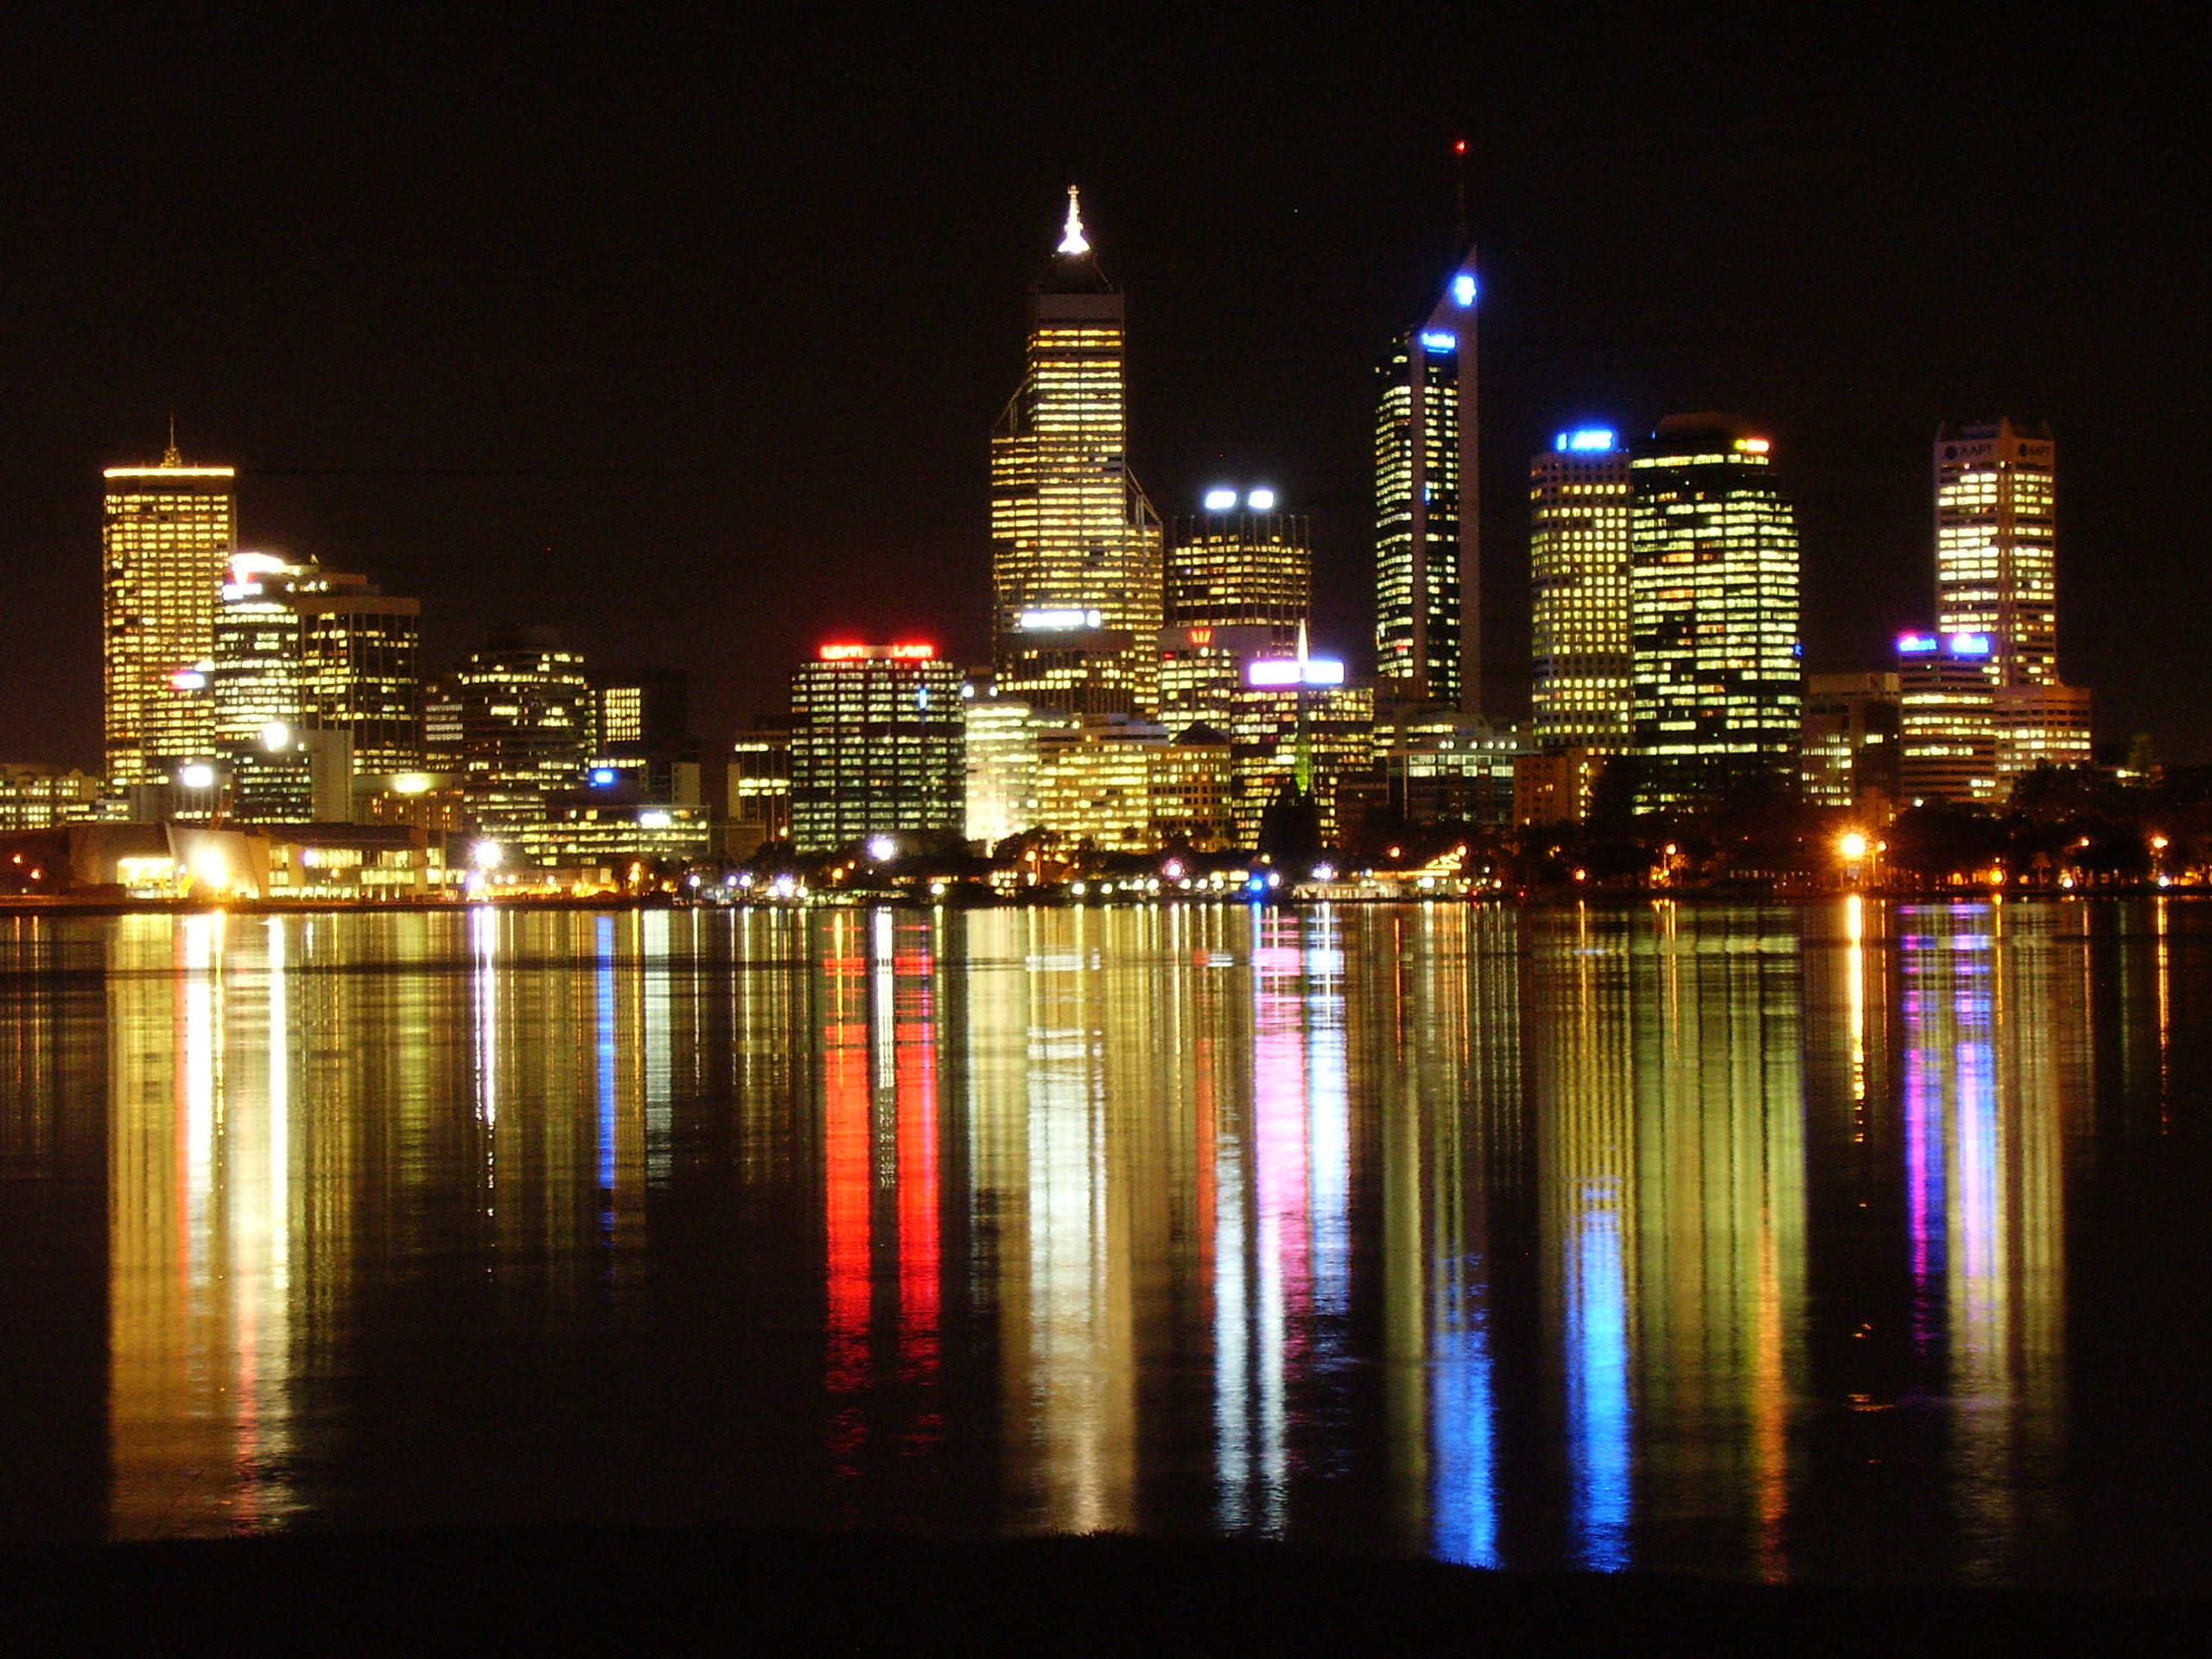 File:Perth skyline at night.jpg